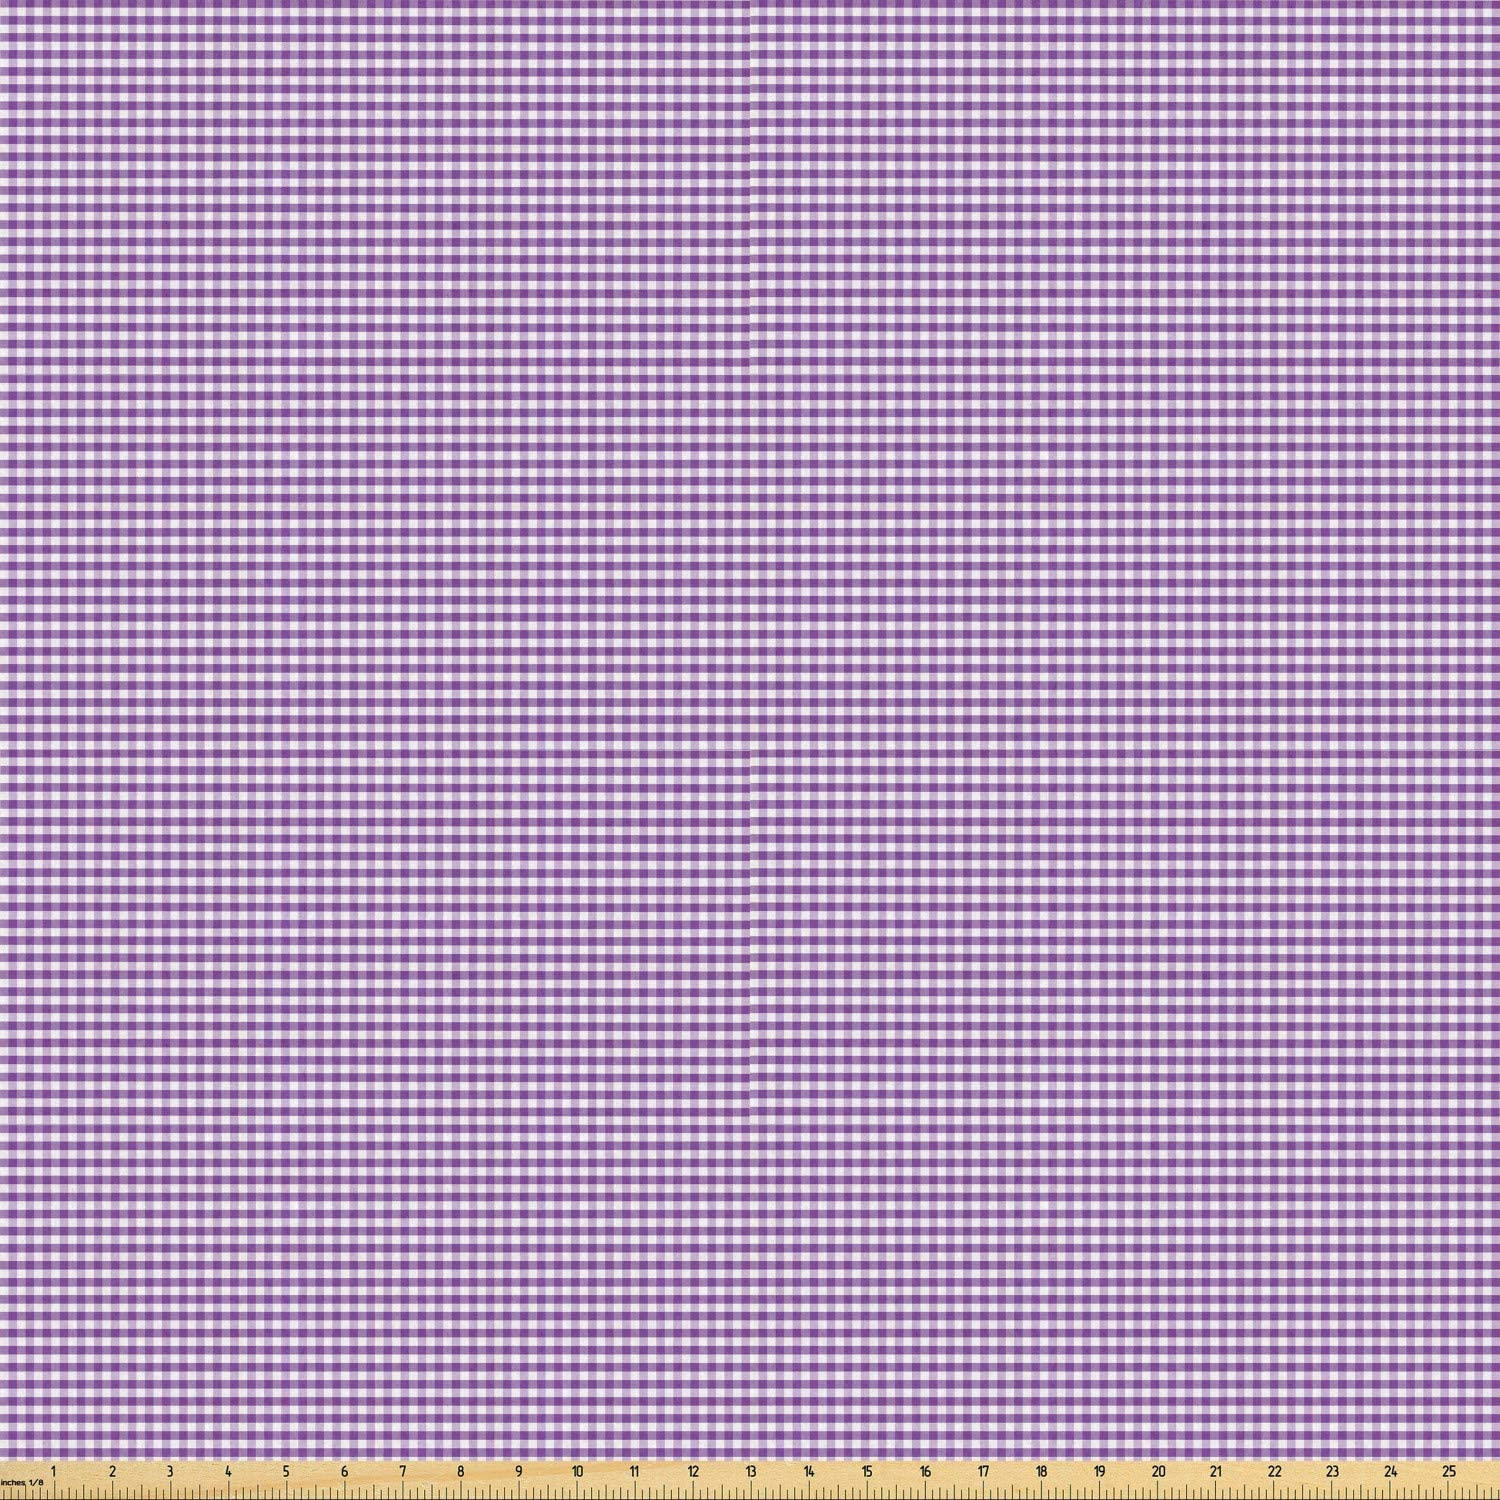 Ambesonne Checkered Fabric by The Yard, Purple and White Colored Gingham Checks Rows Picnic Theme Vintage Style Print, Stretch Knit Fabric for Clothing Sewing and Arts Crafts, 5 Yards, Purple White